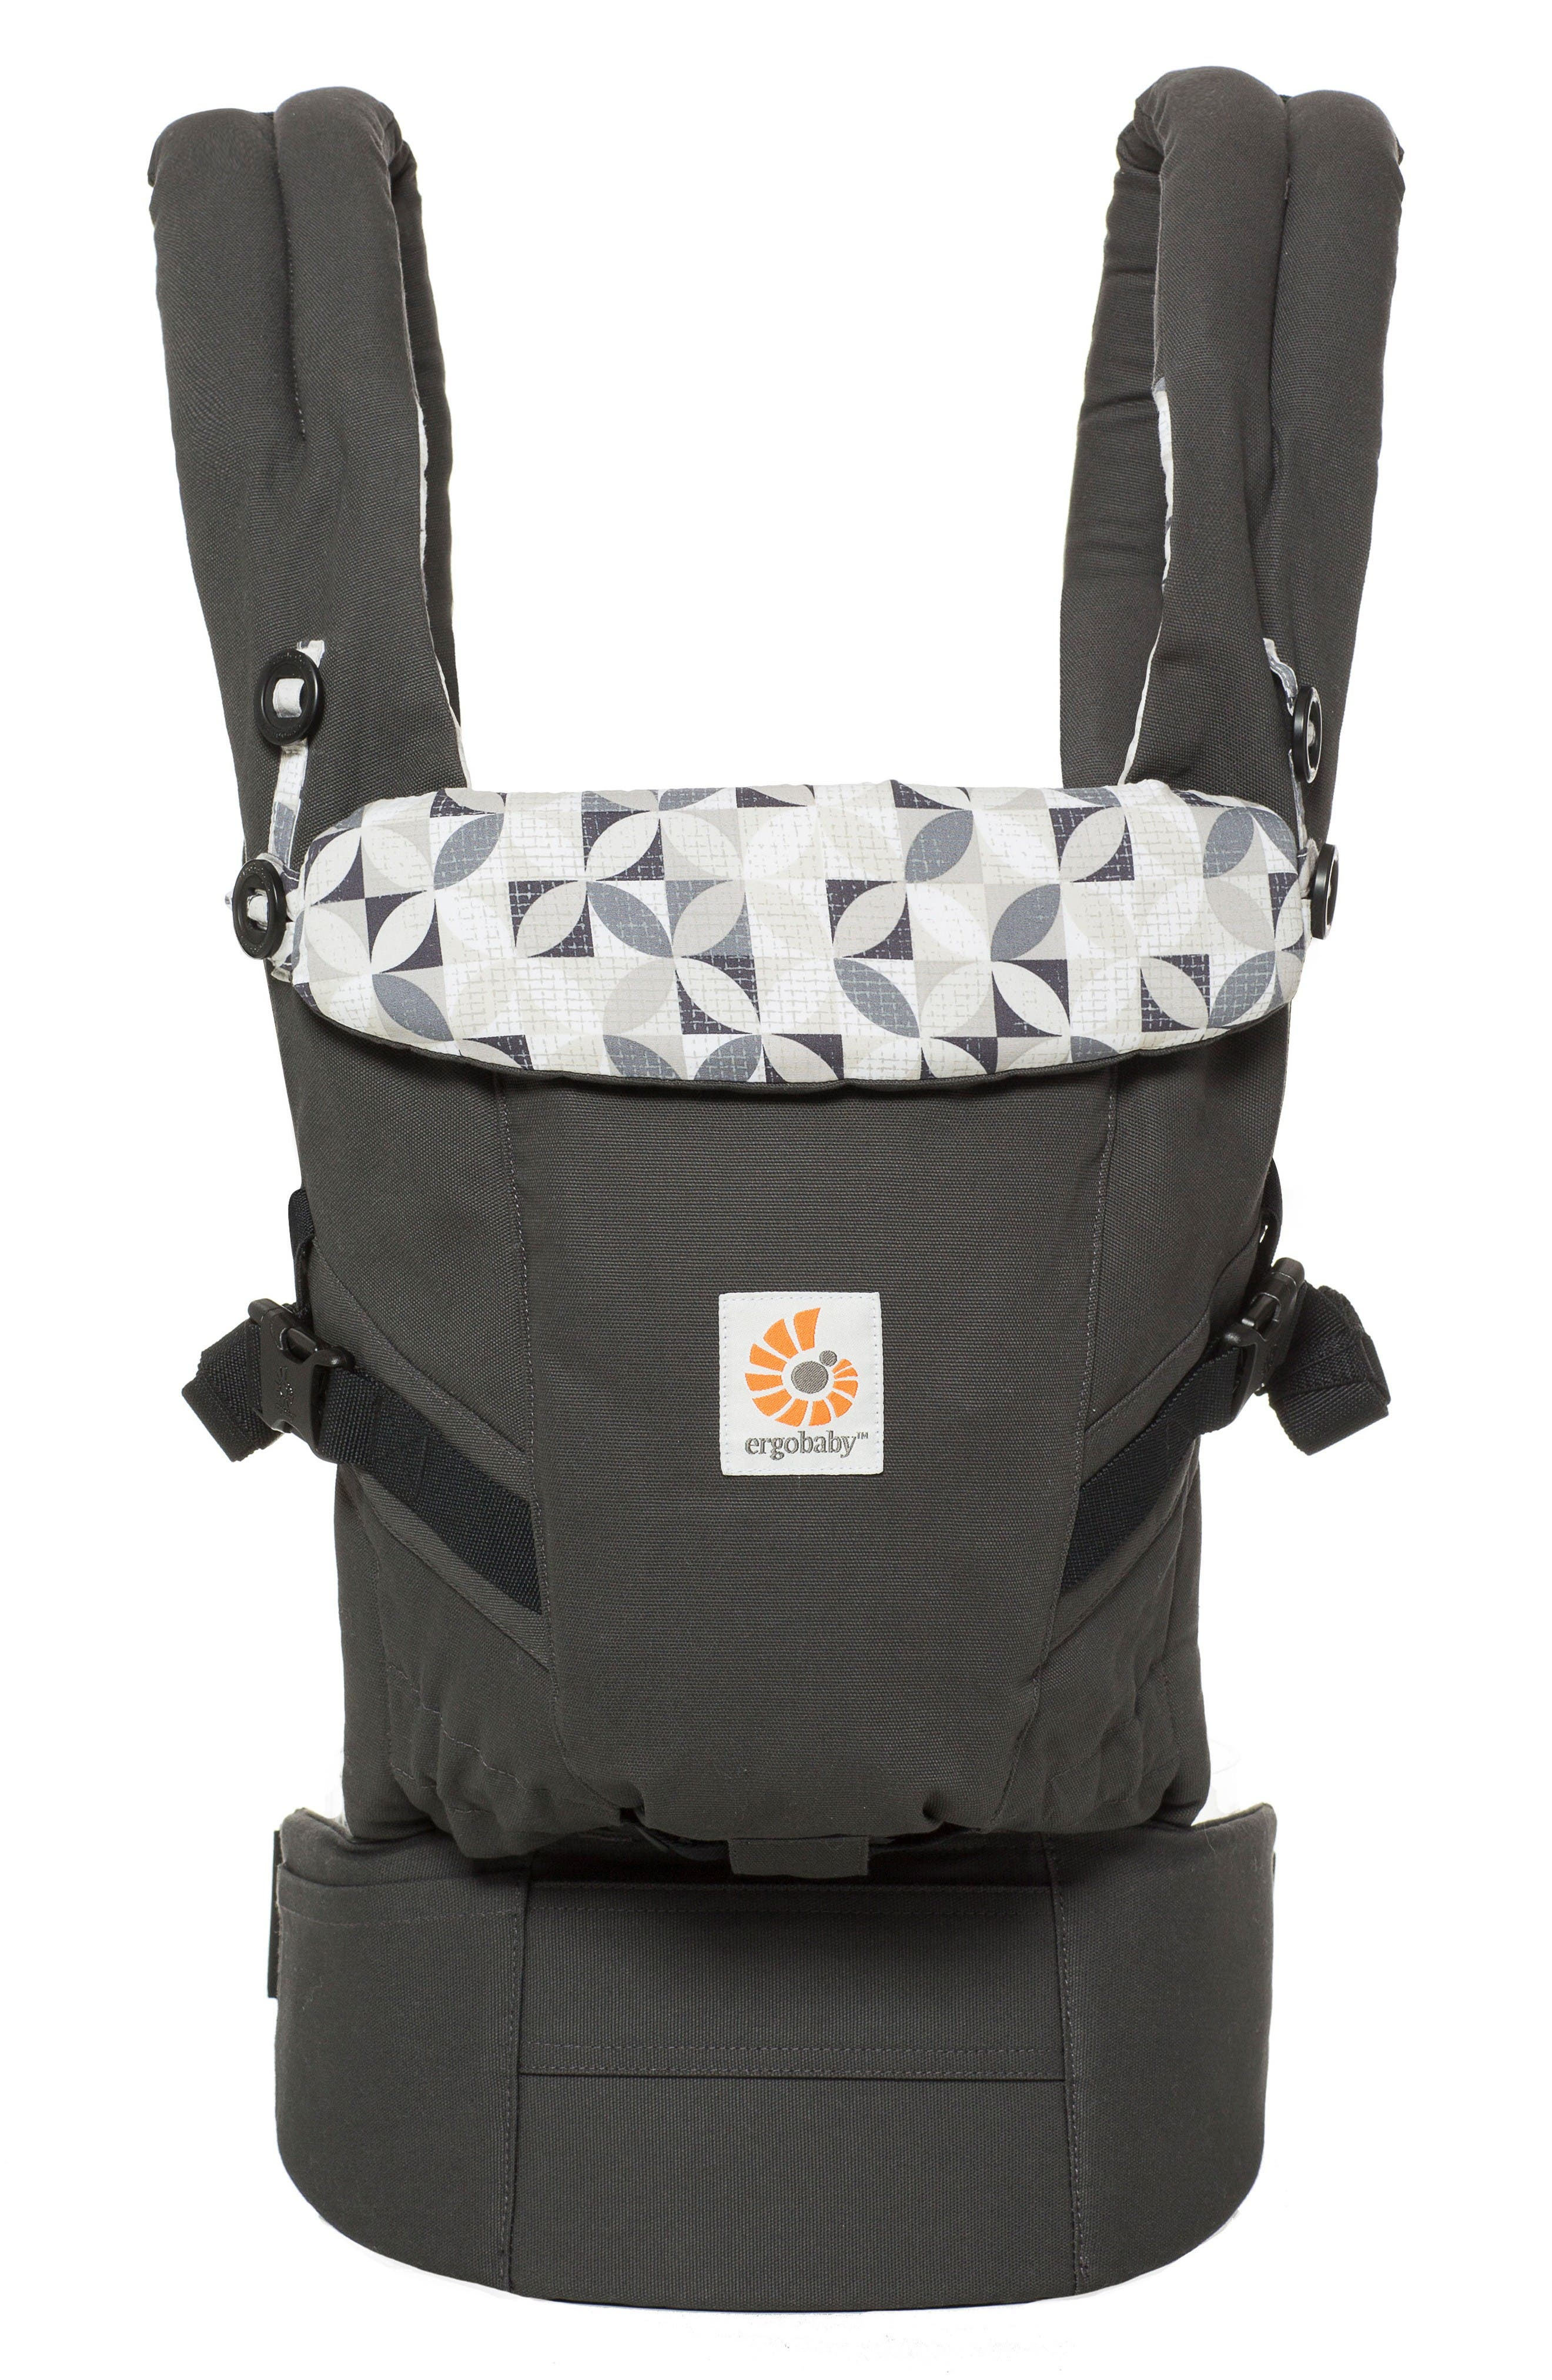 Alternate Image 1 Selected - ERGObaby Three Position ADAPT Baby Carrier